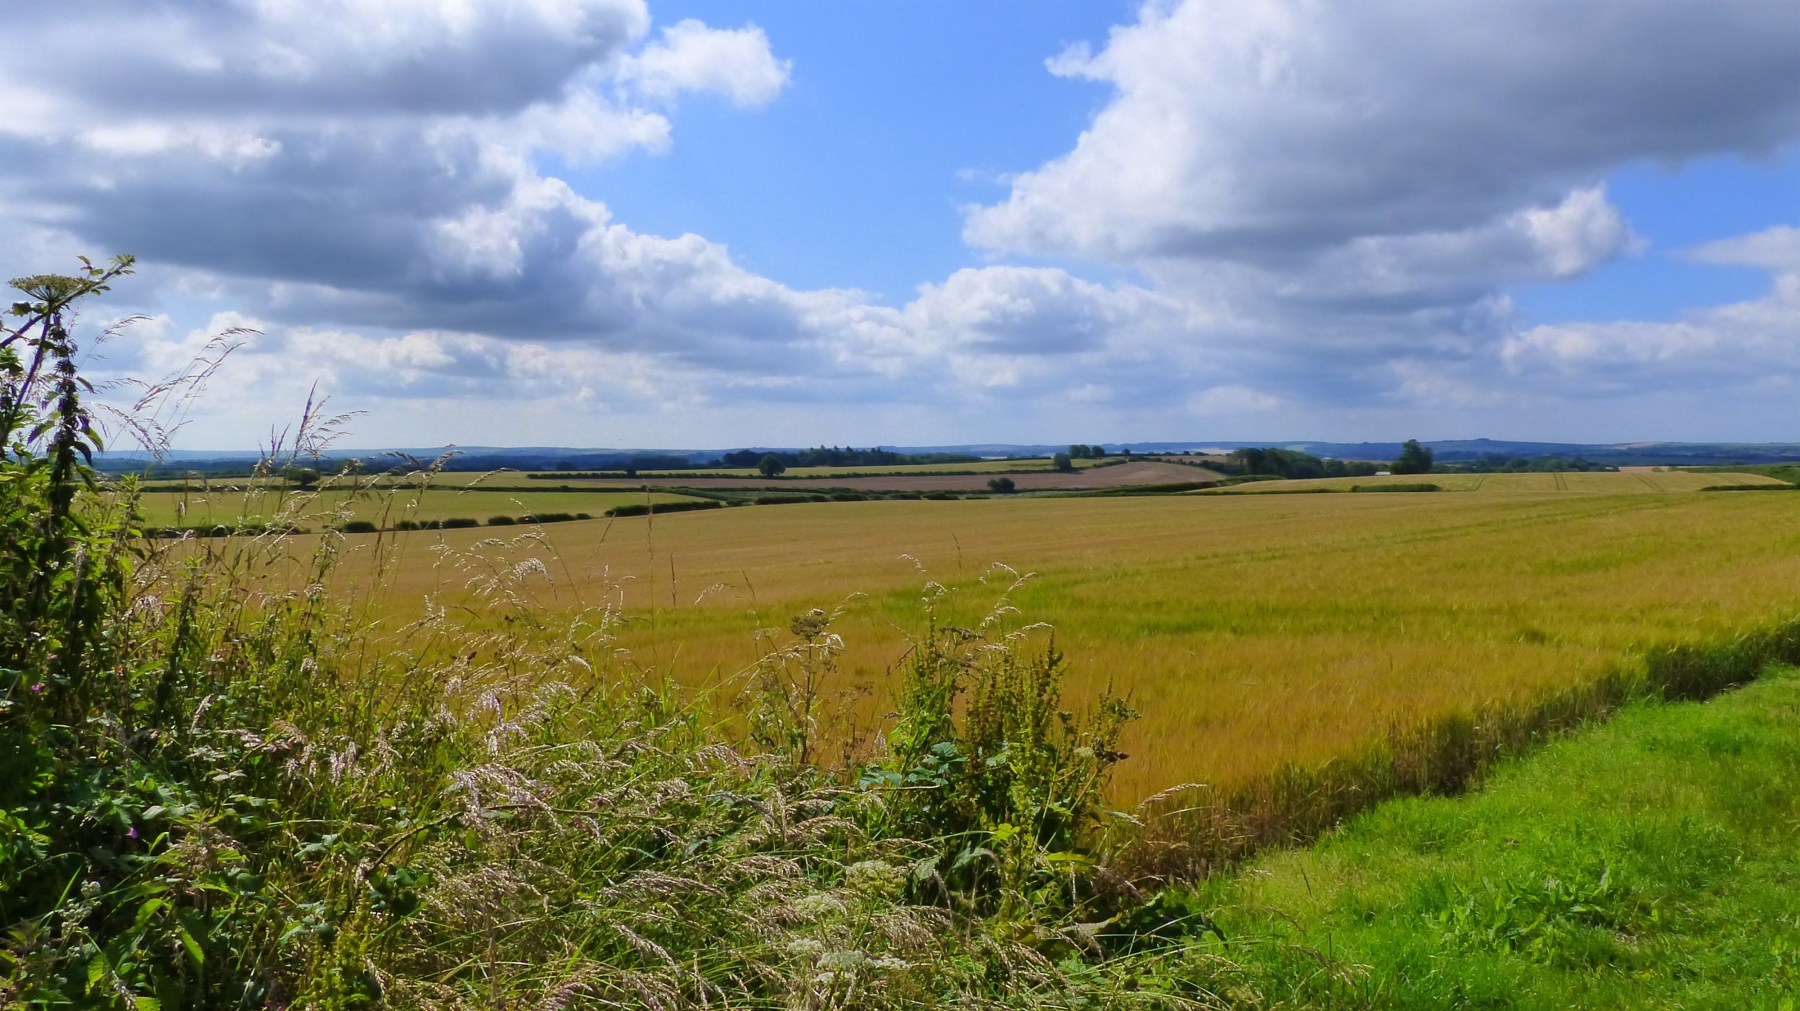 Countryside fields and hedgerows with blue sky and clouds